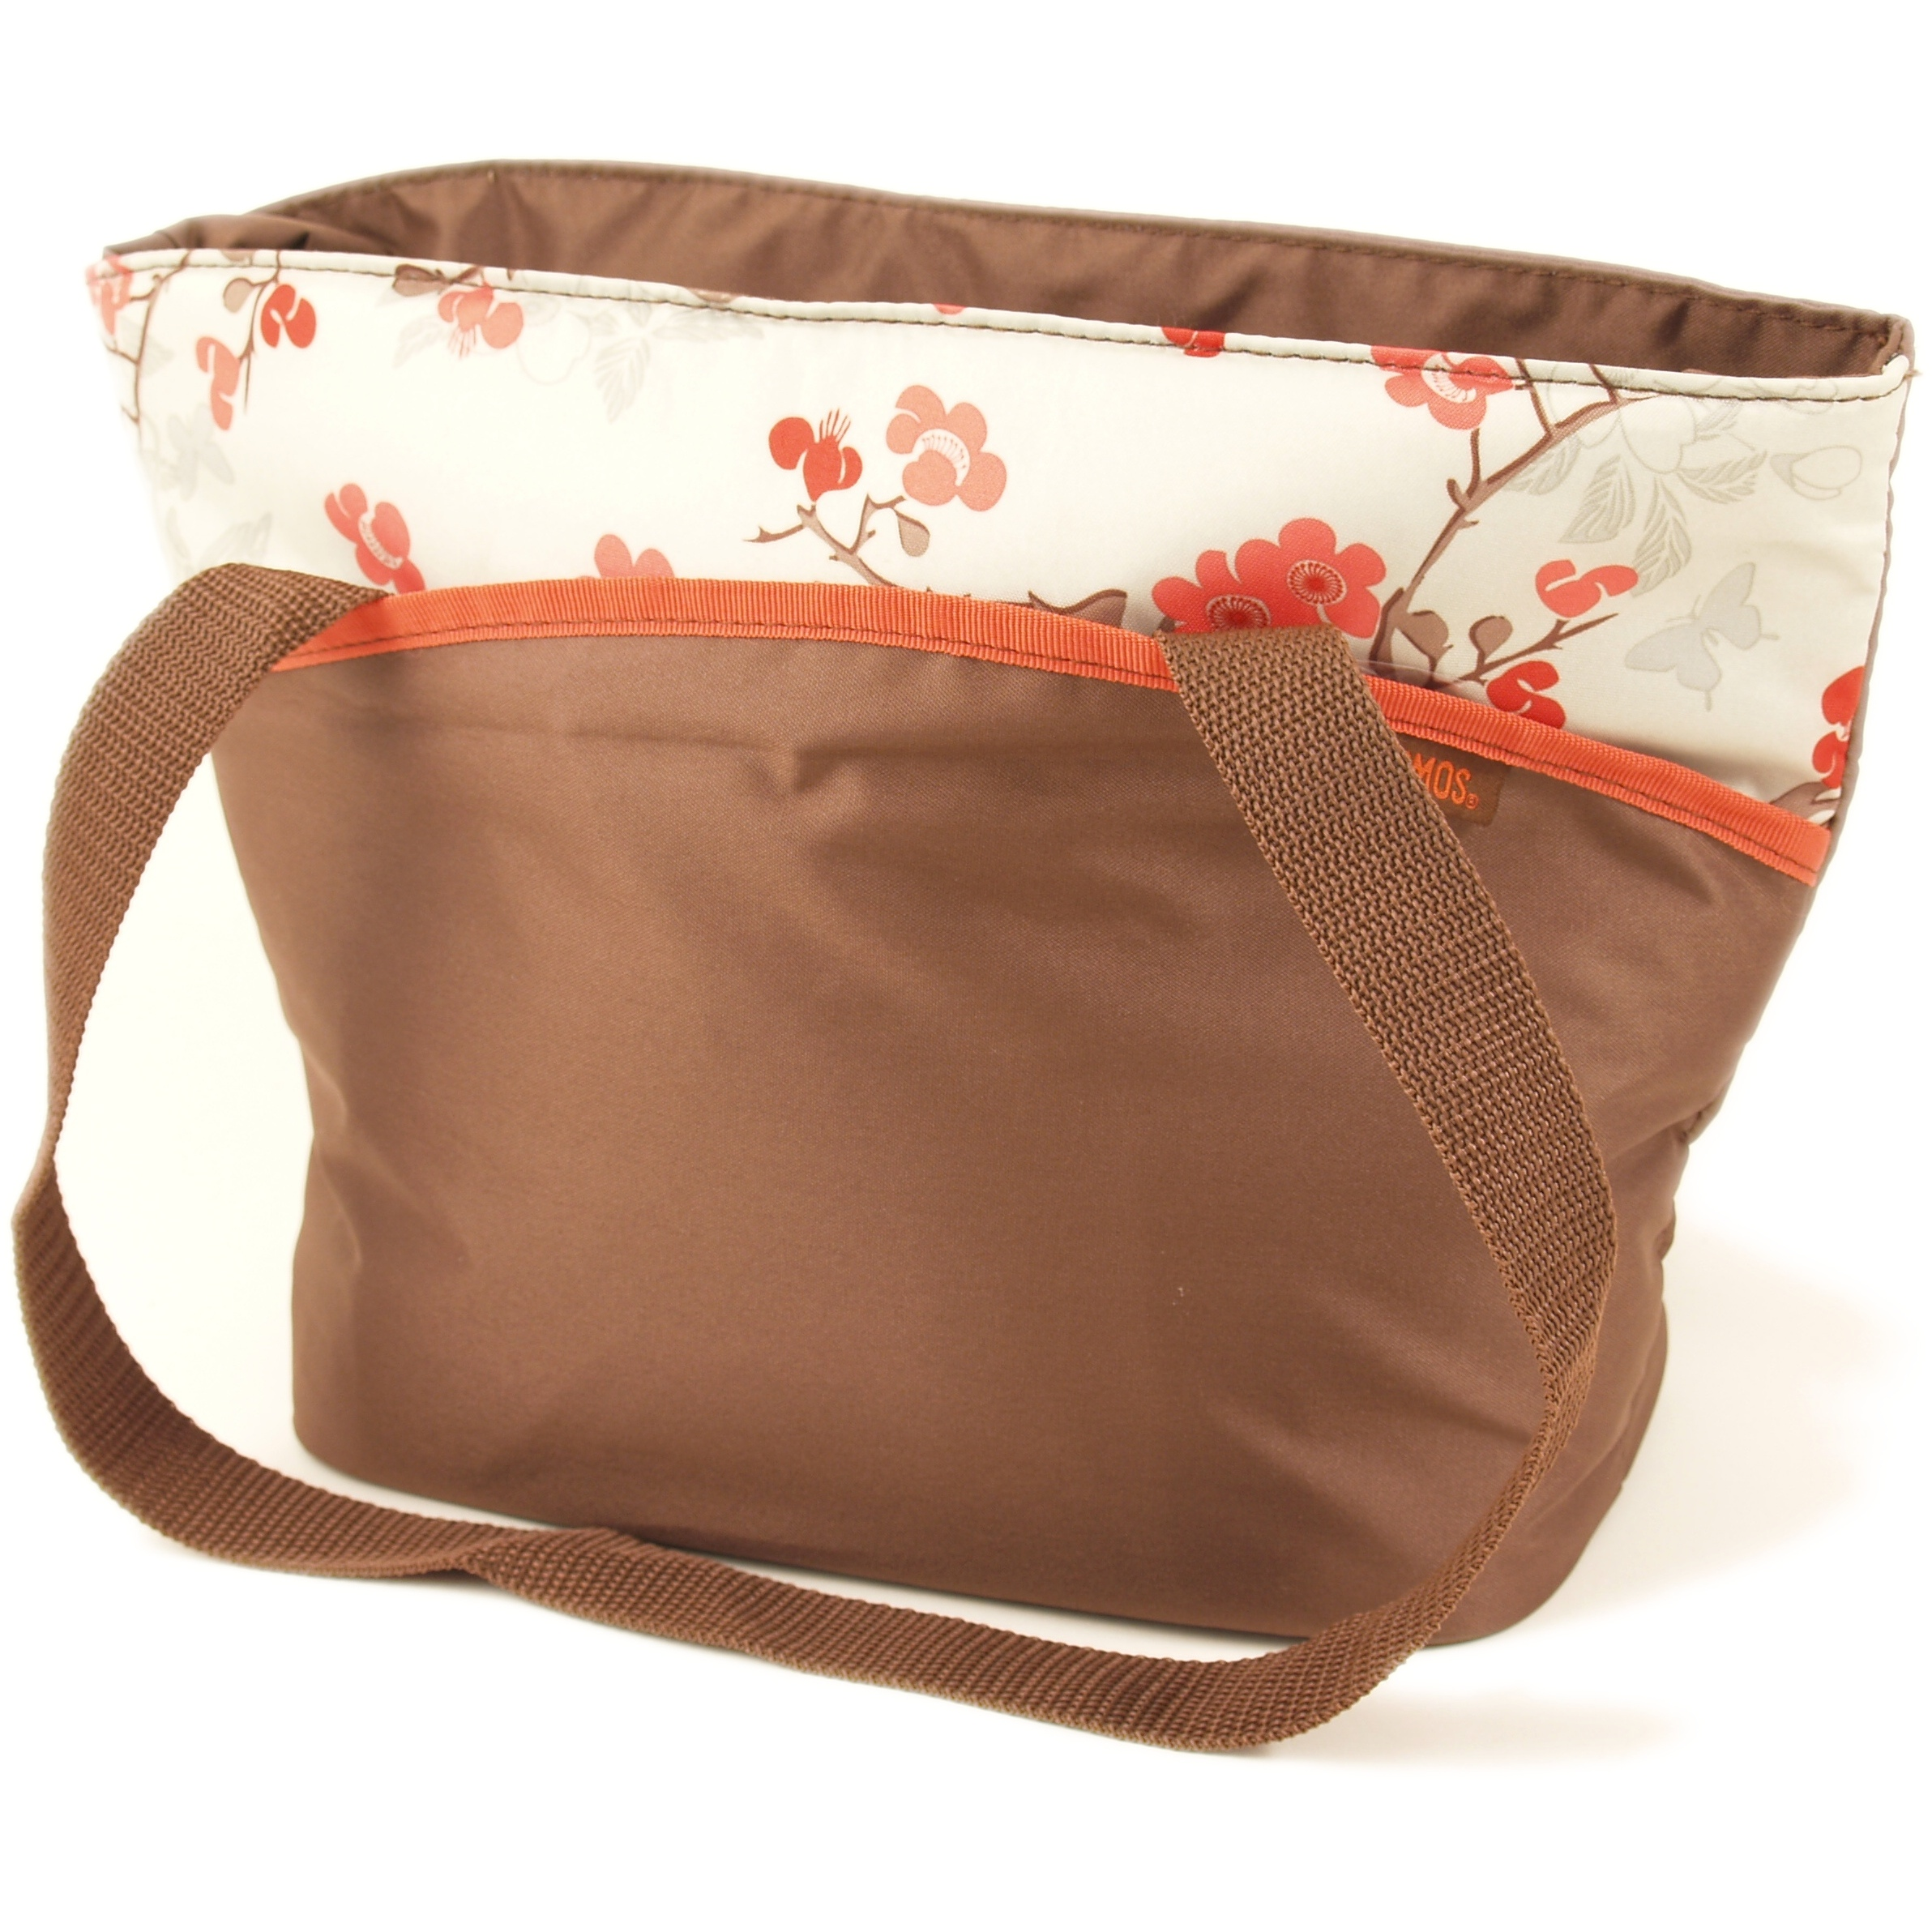 Thermos Raya Brown with Orange Flowers Insulated 9 Can Tote